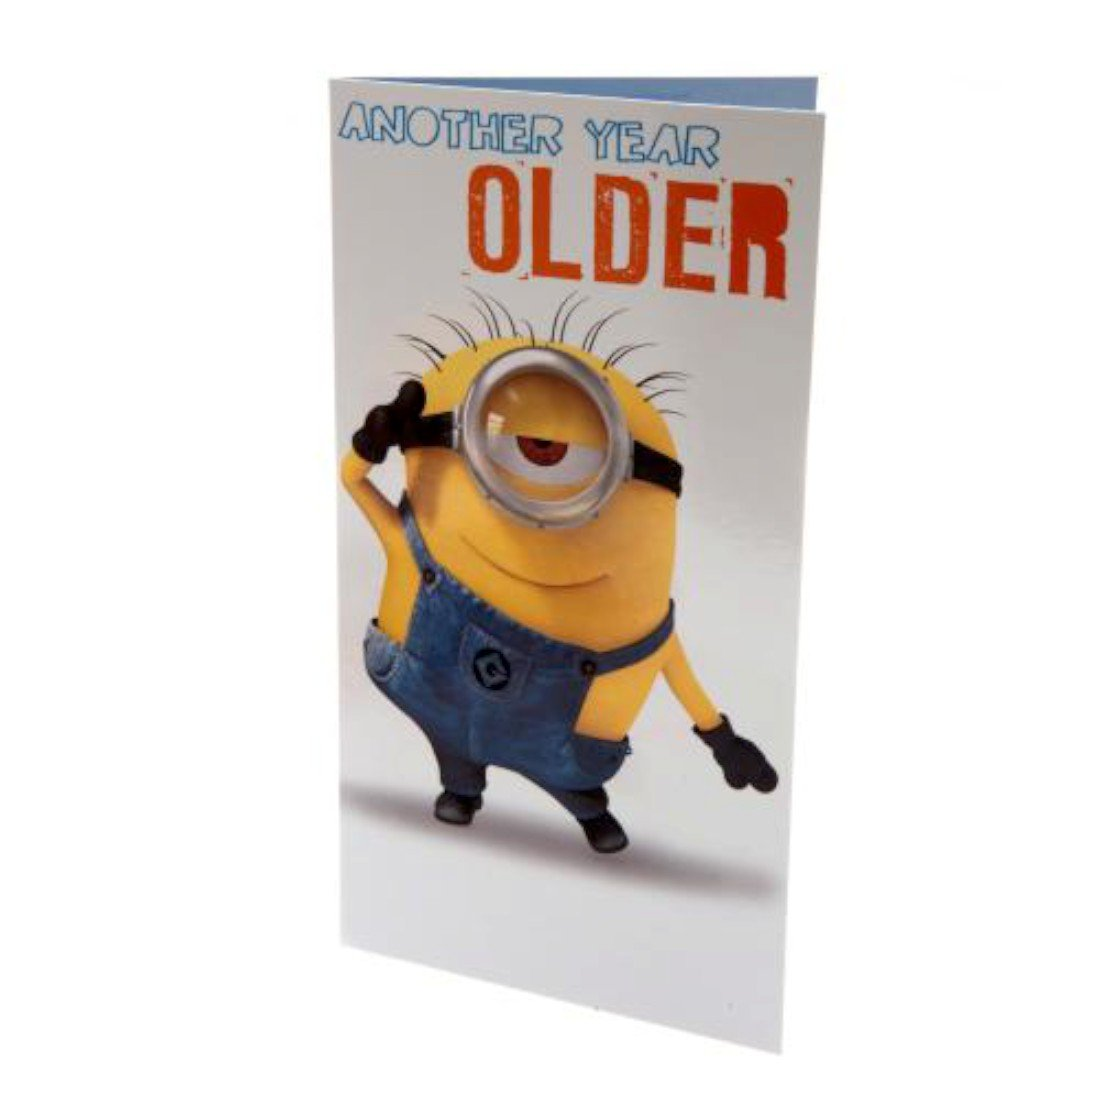 Amazon Despicable Me Minion Another Year Older Birthday Card